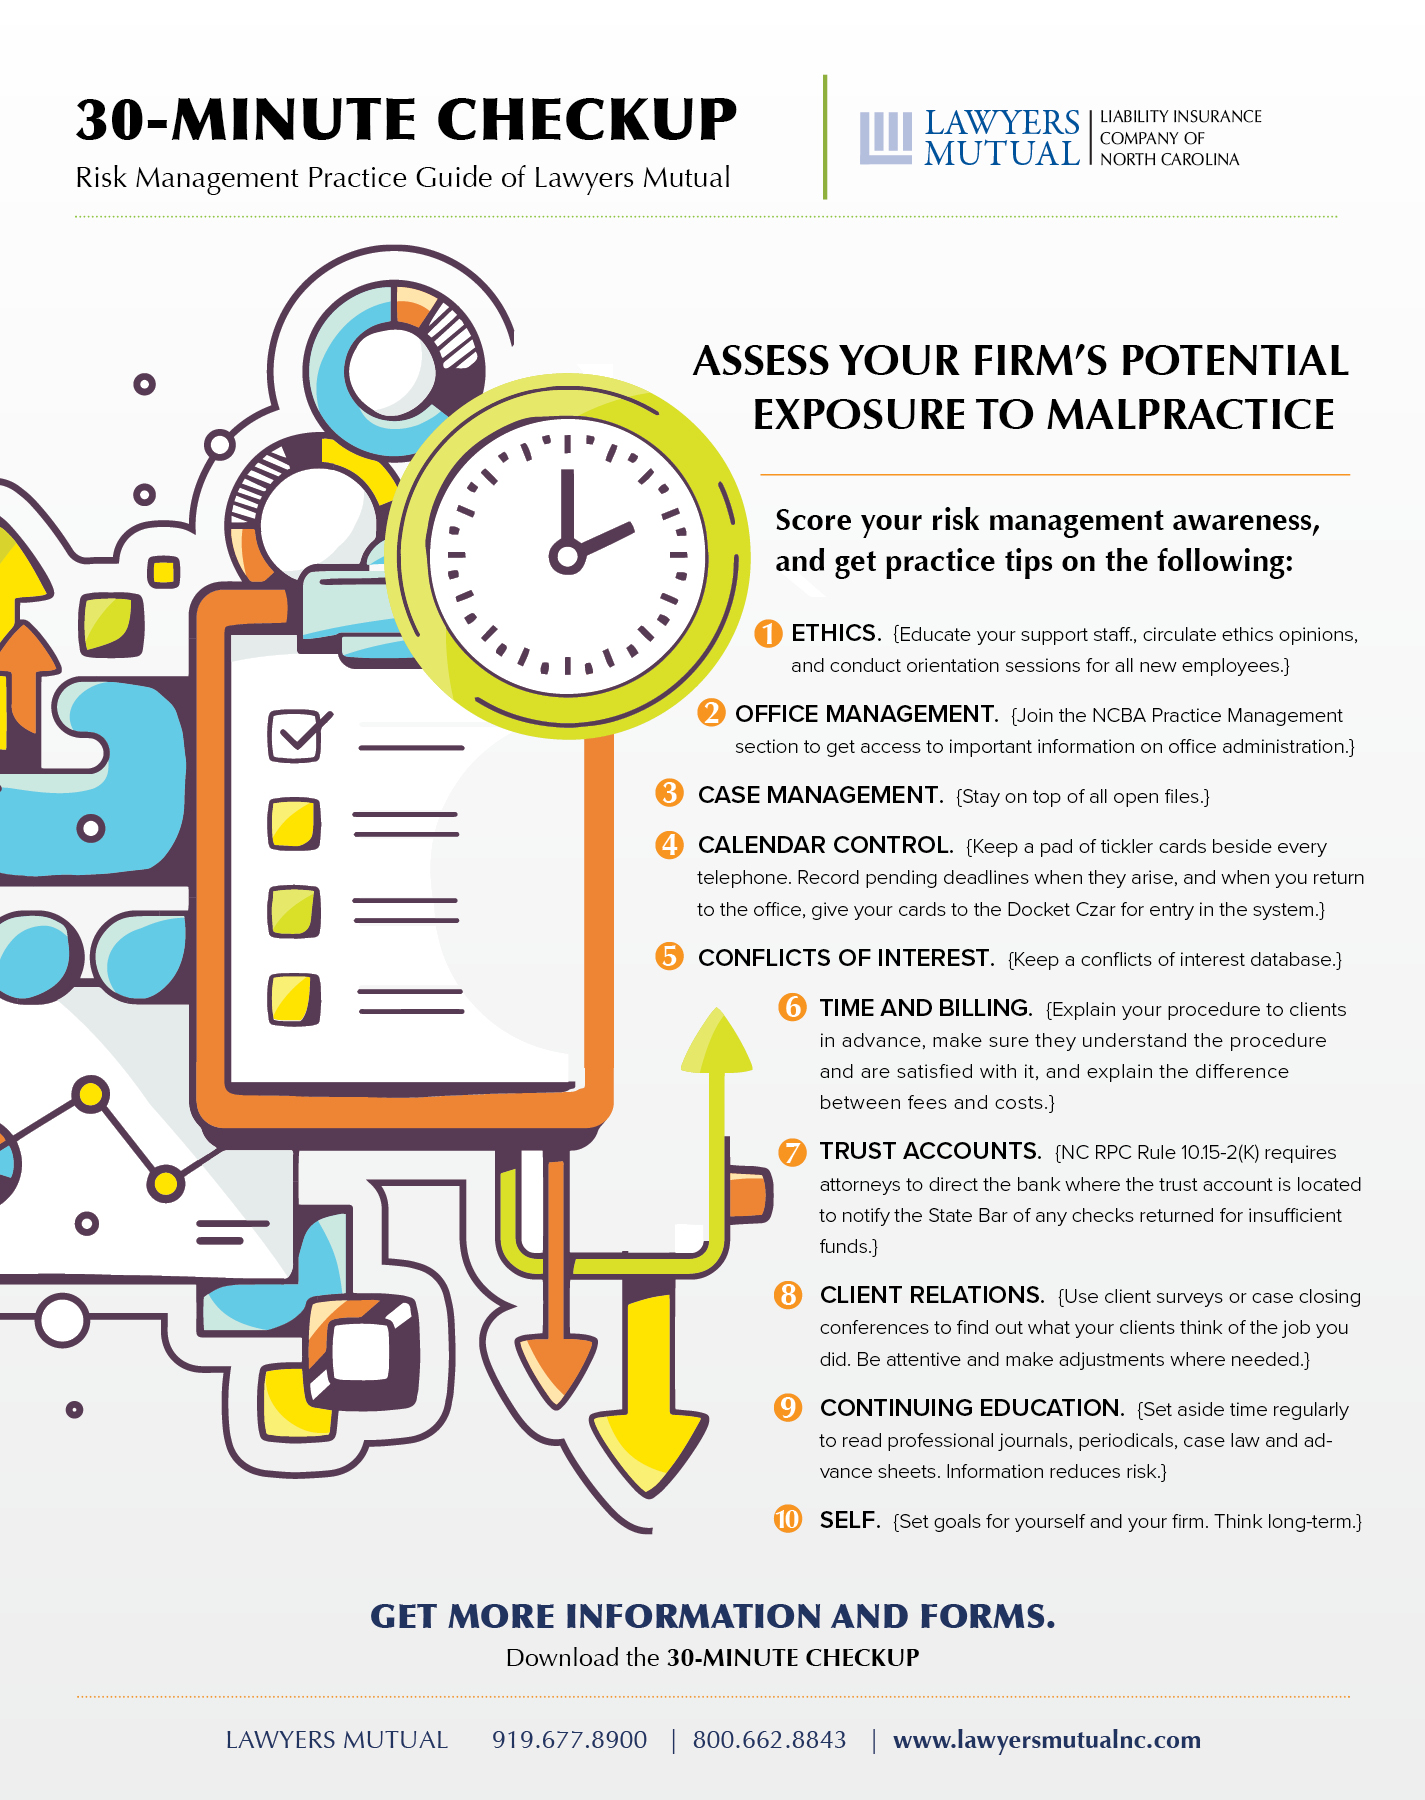 30 Minute Malpractice Checkup infographic